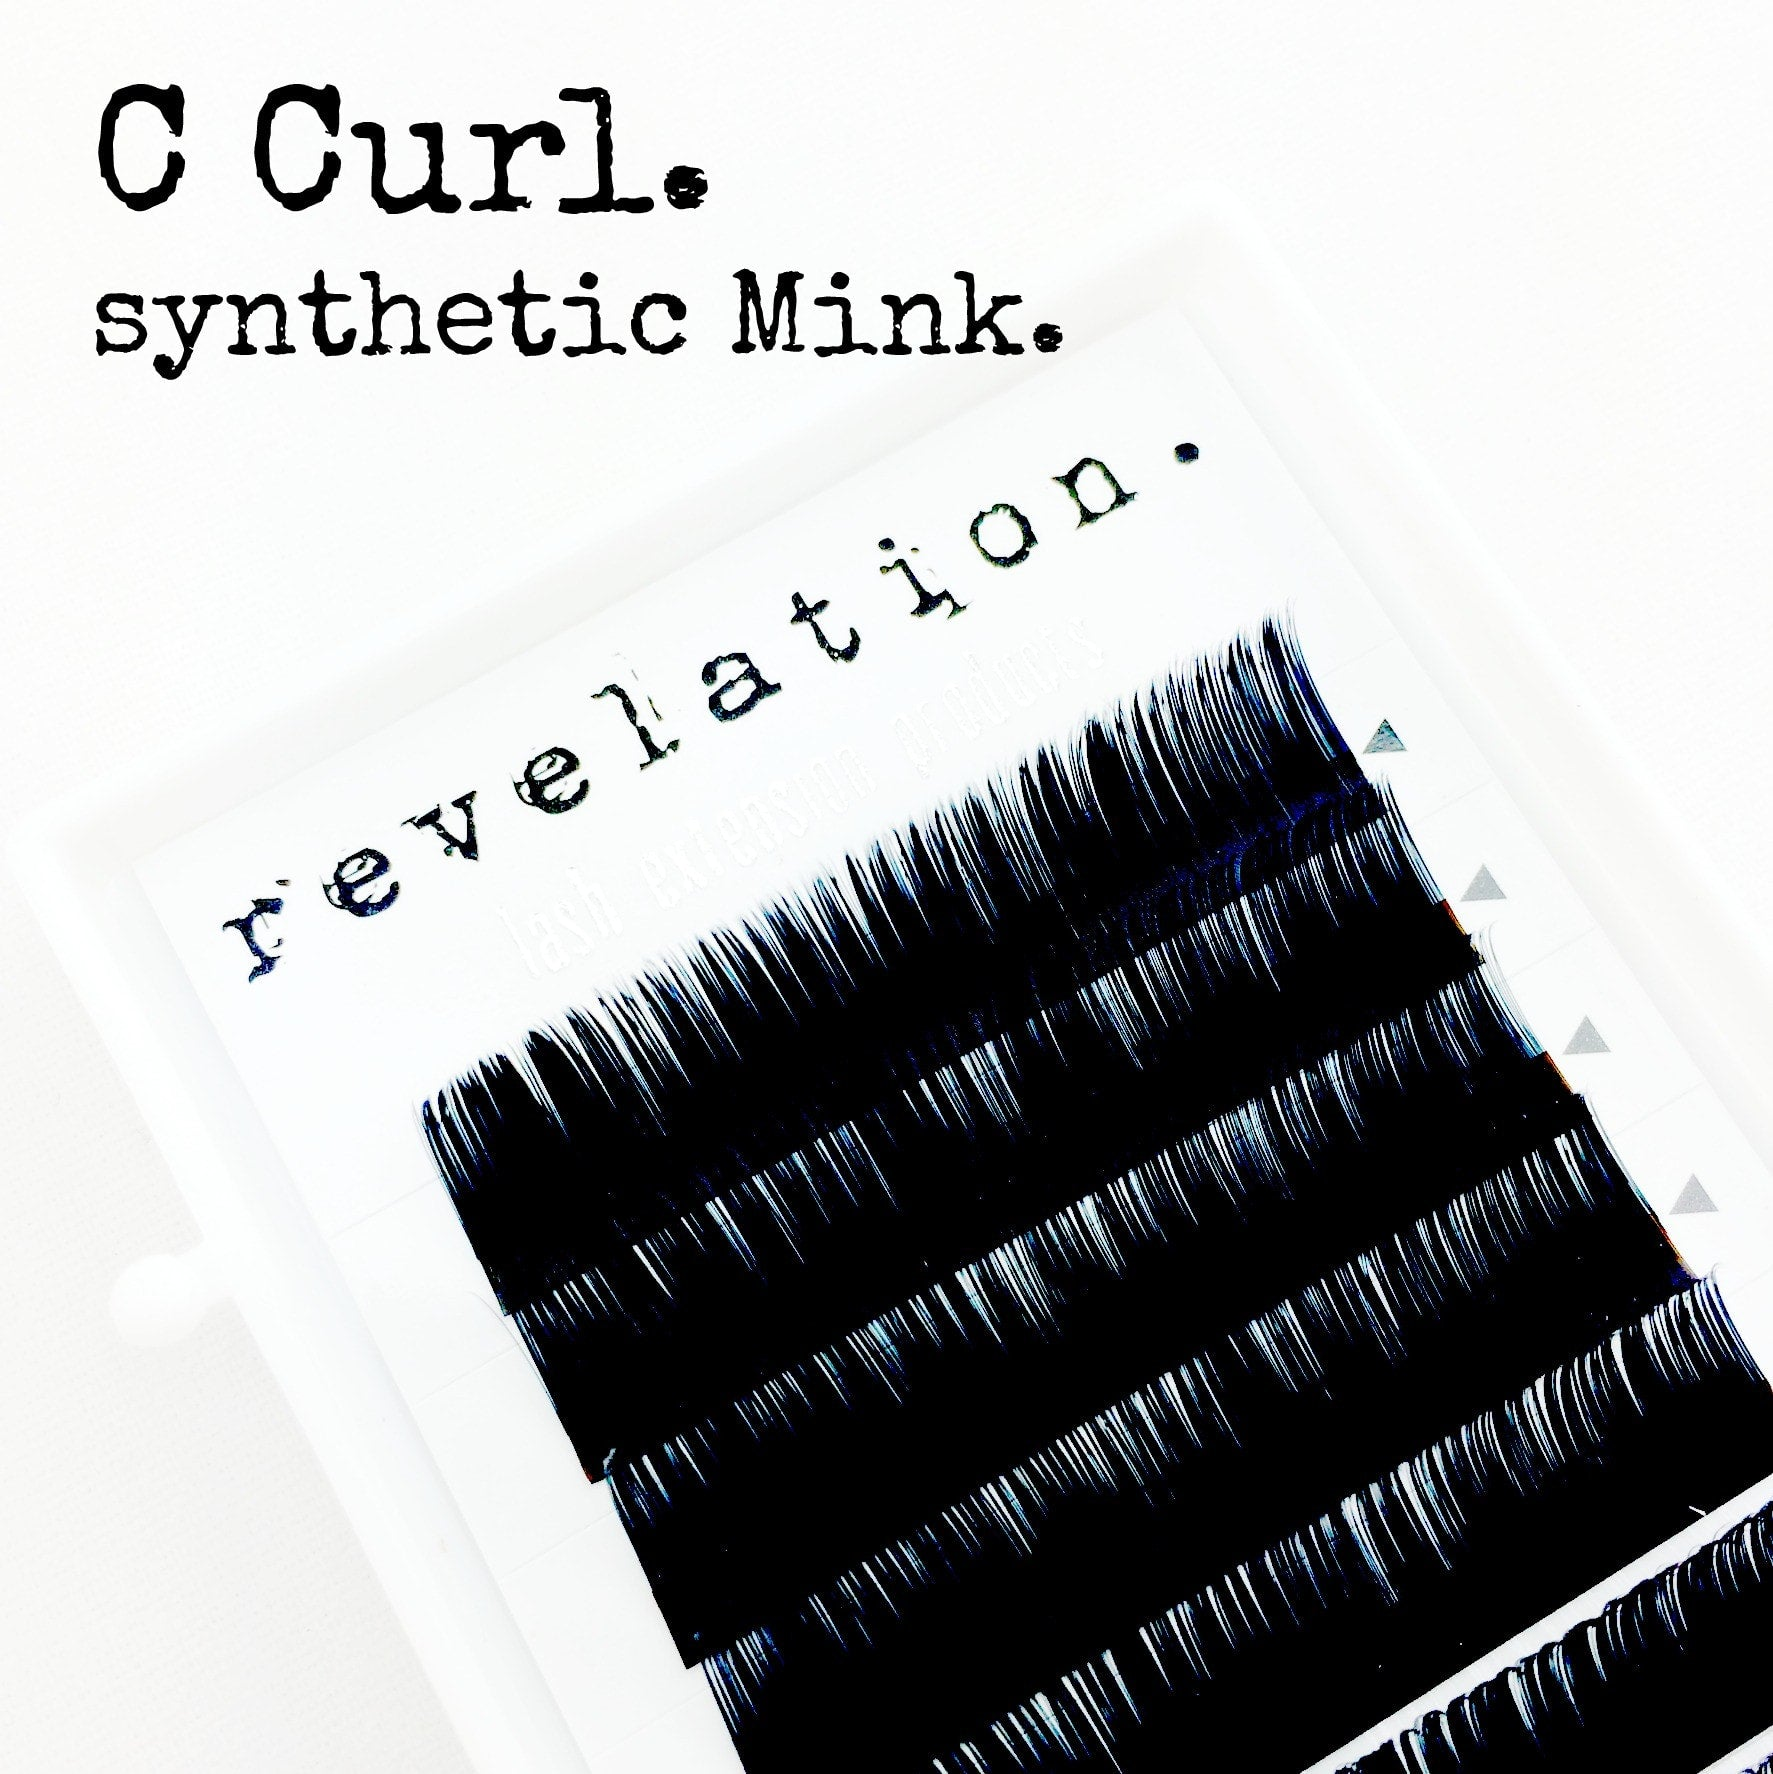 C Curl Synthetic Mink Eyelash Extension Lash Trays by Revelation.